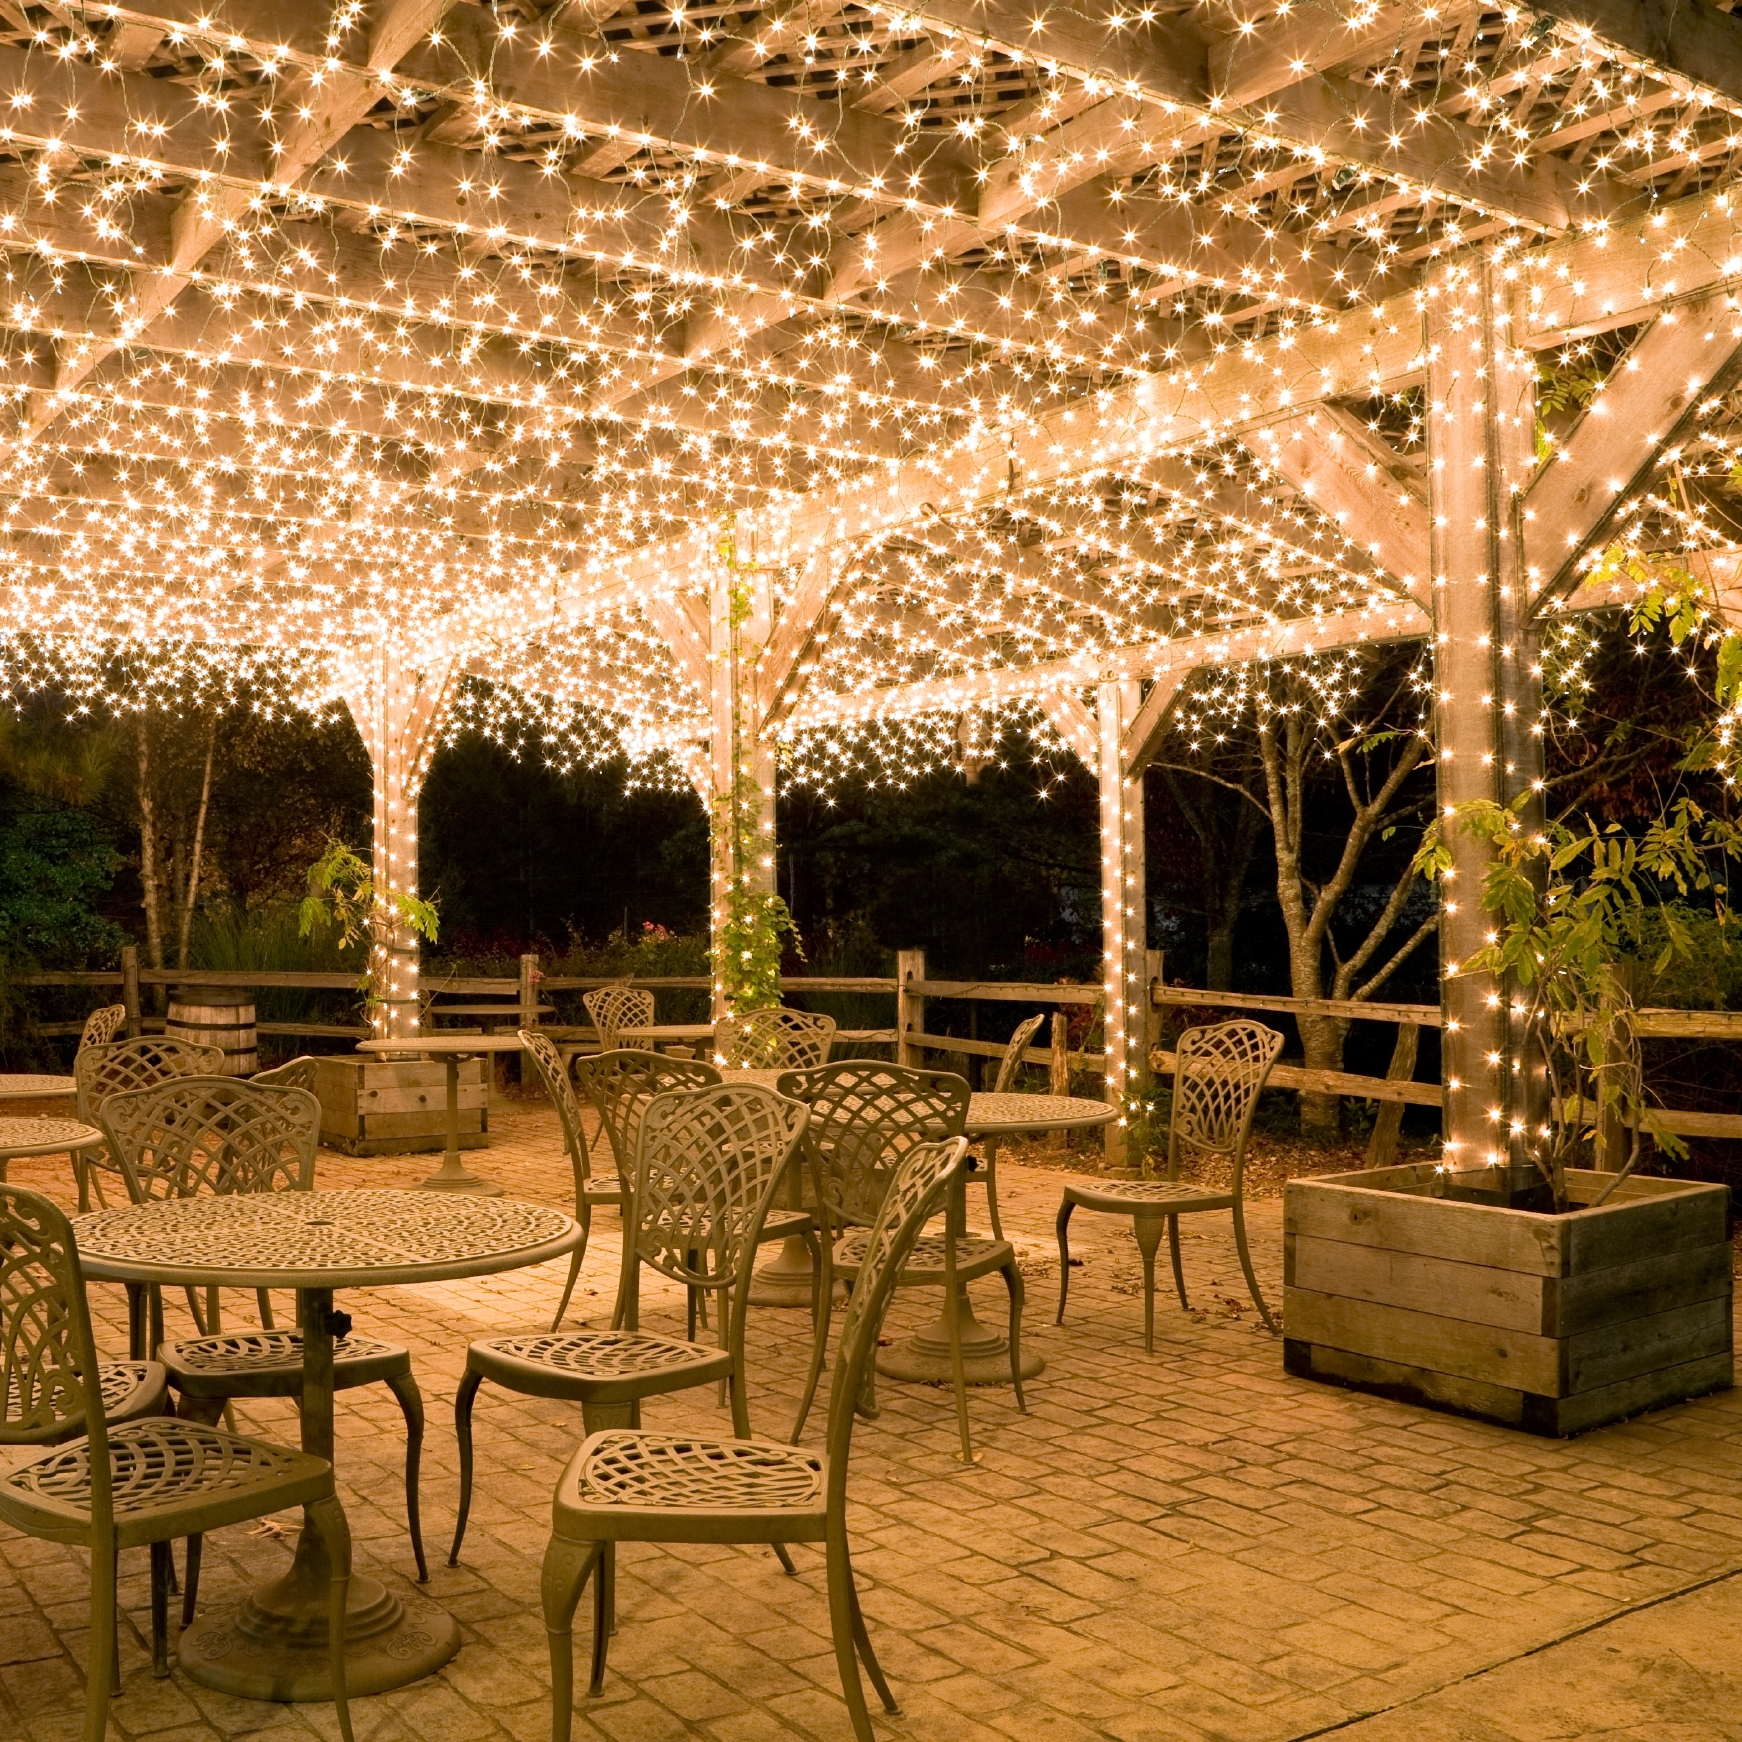 Solar Patio Lighting Ideas Outside Diy Outdoor Yard Landscape Pertaining To Current Outdoor Yard Lanterns (View 12 of 20)